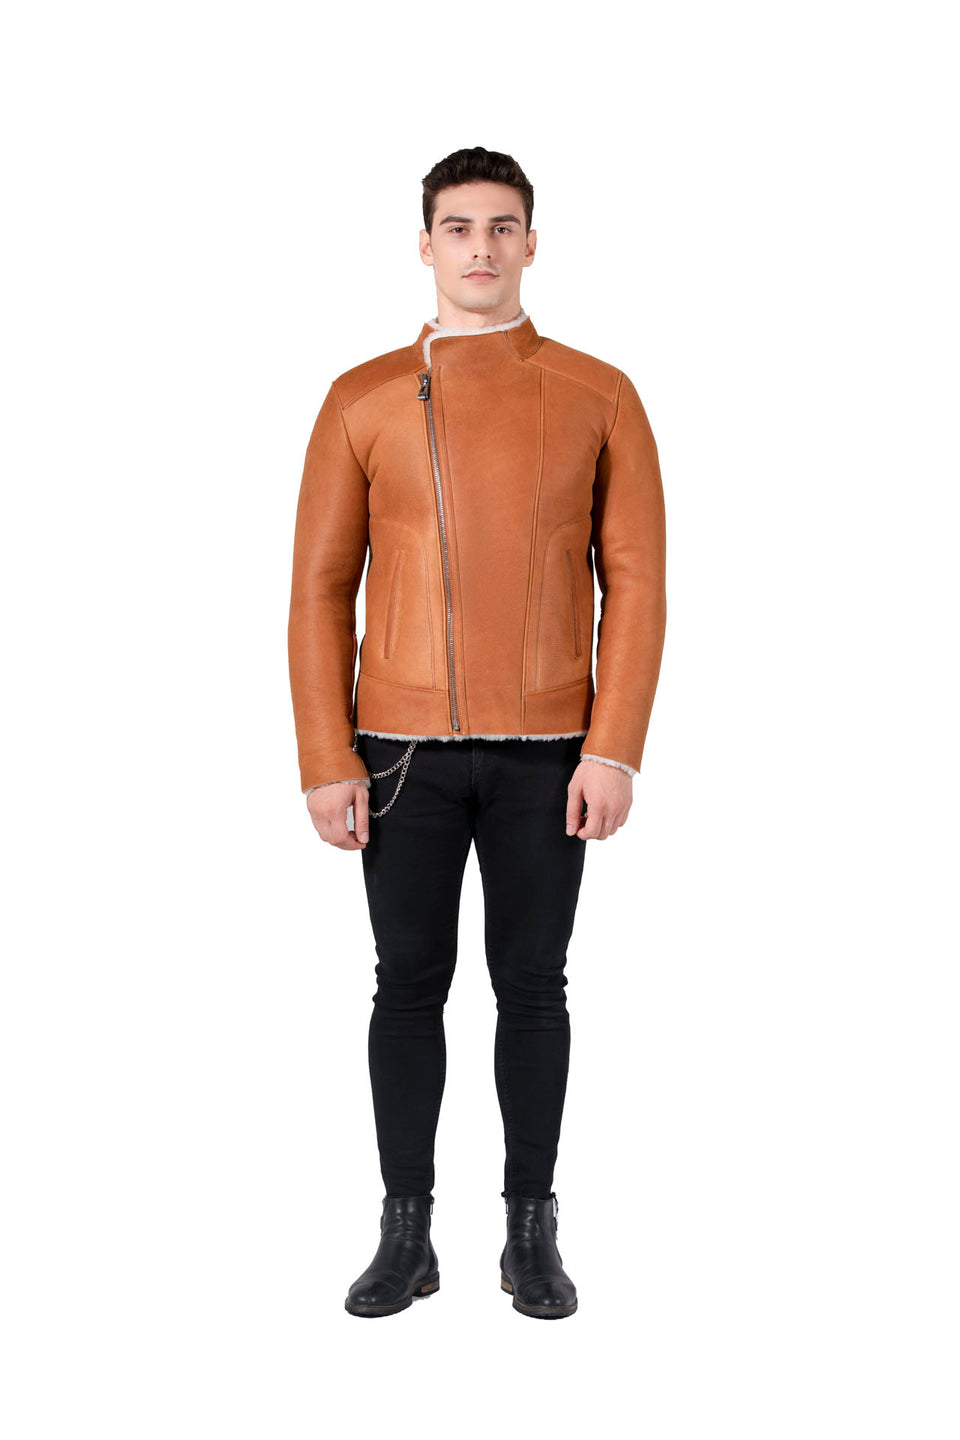 Detroit - Men's Shearling Leather Jacket Fashion 2020